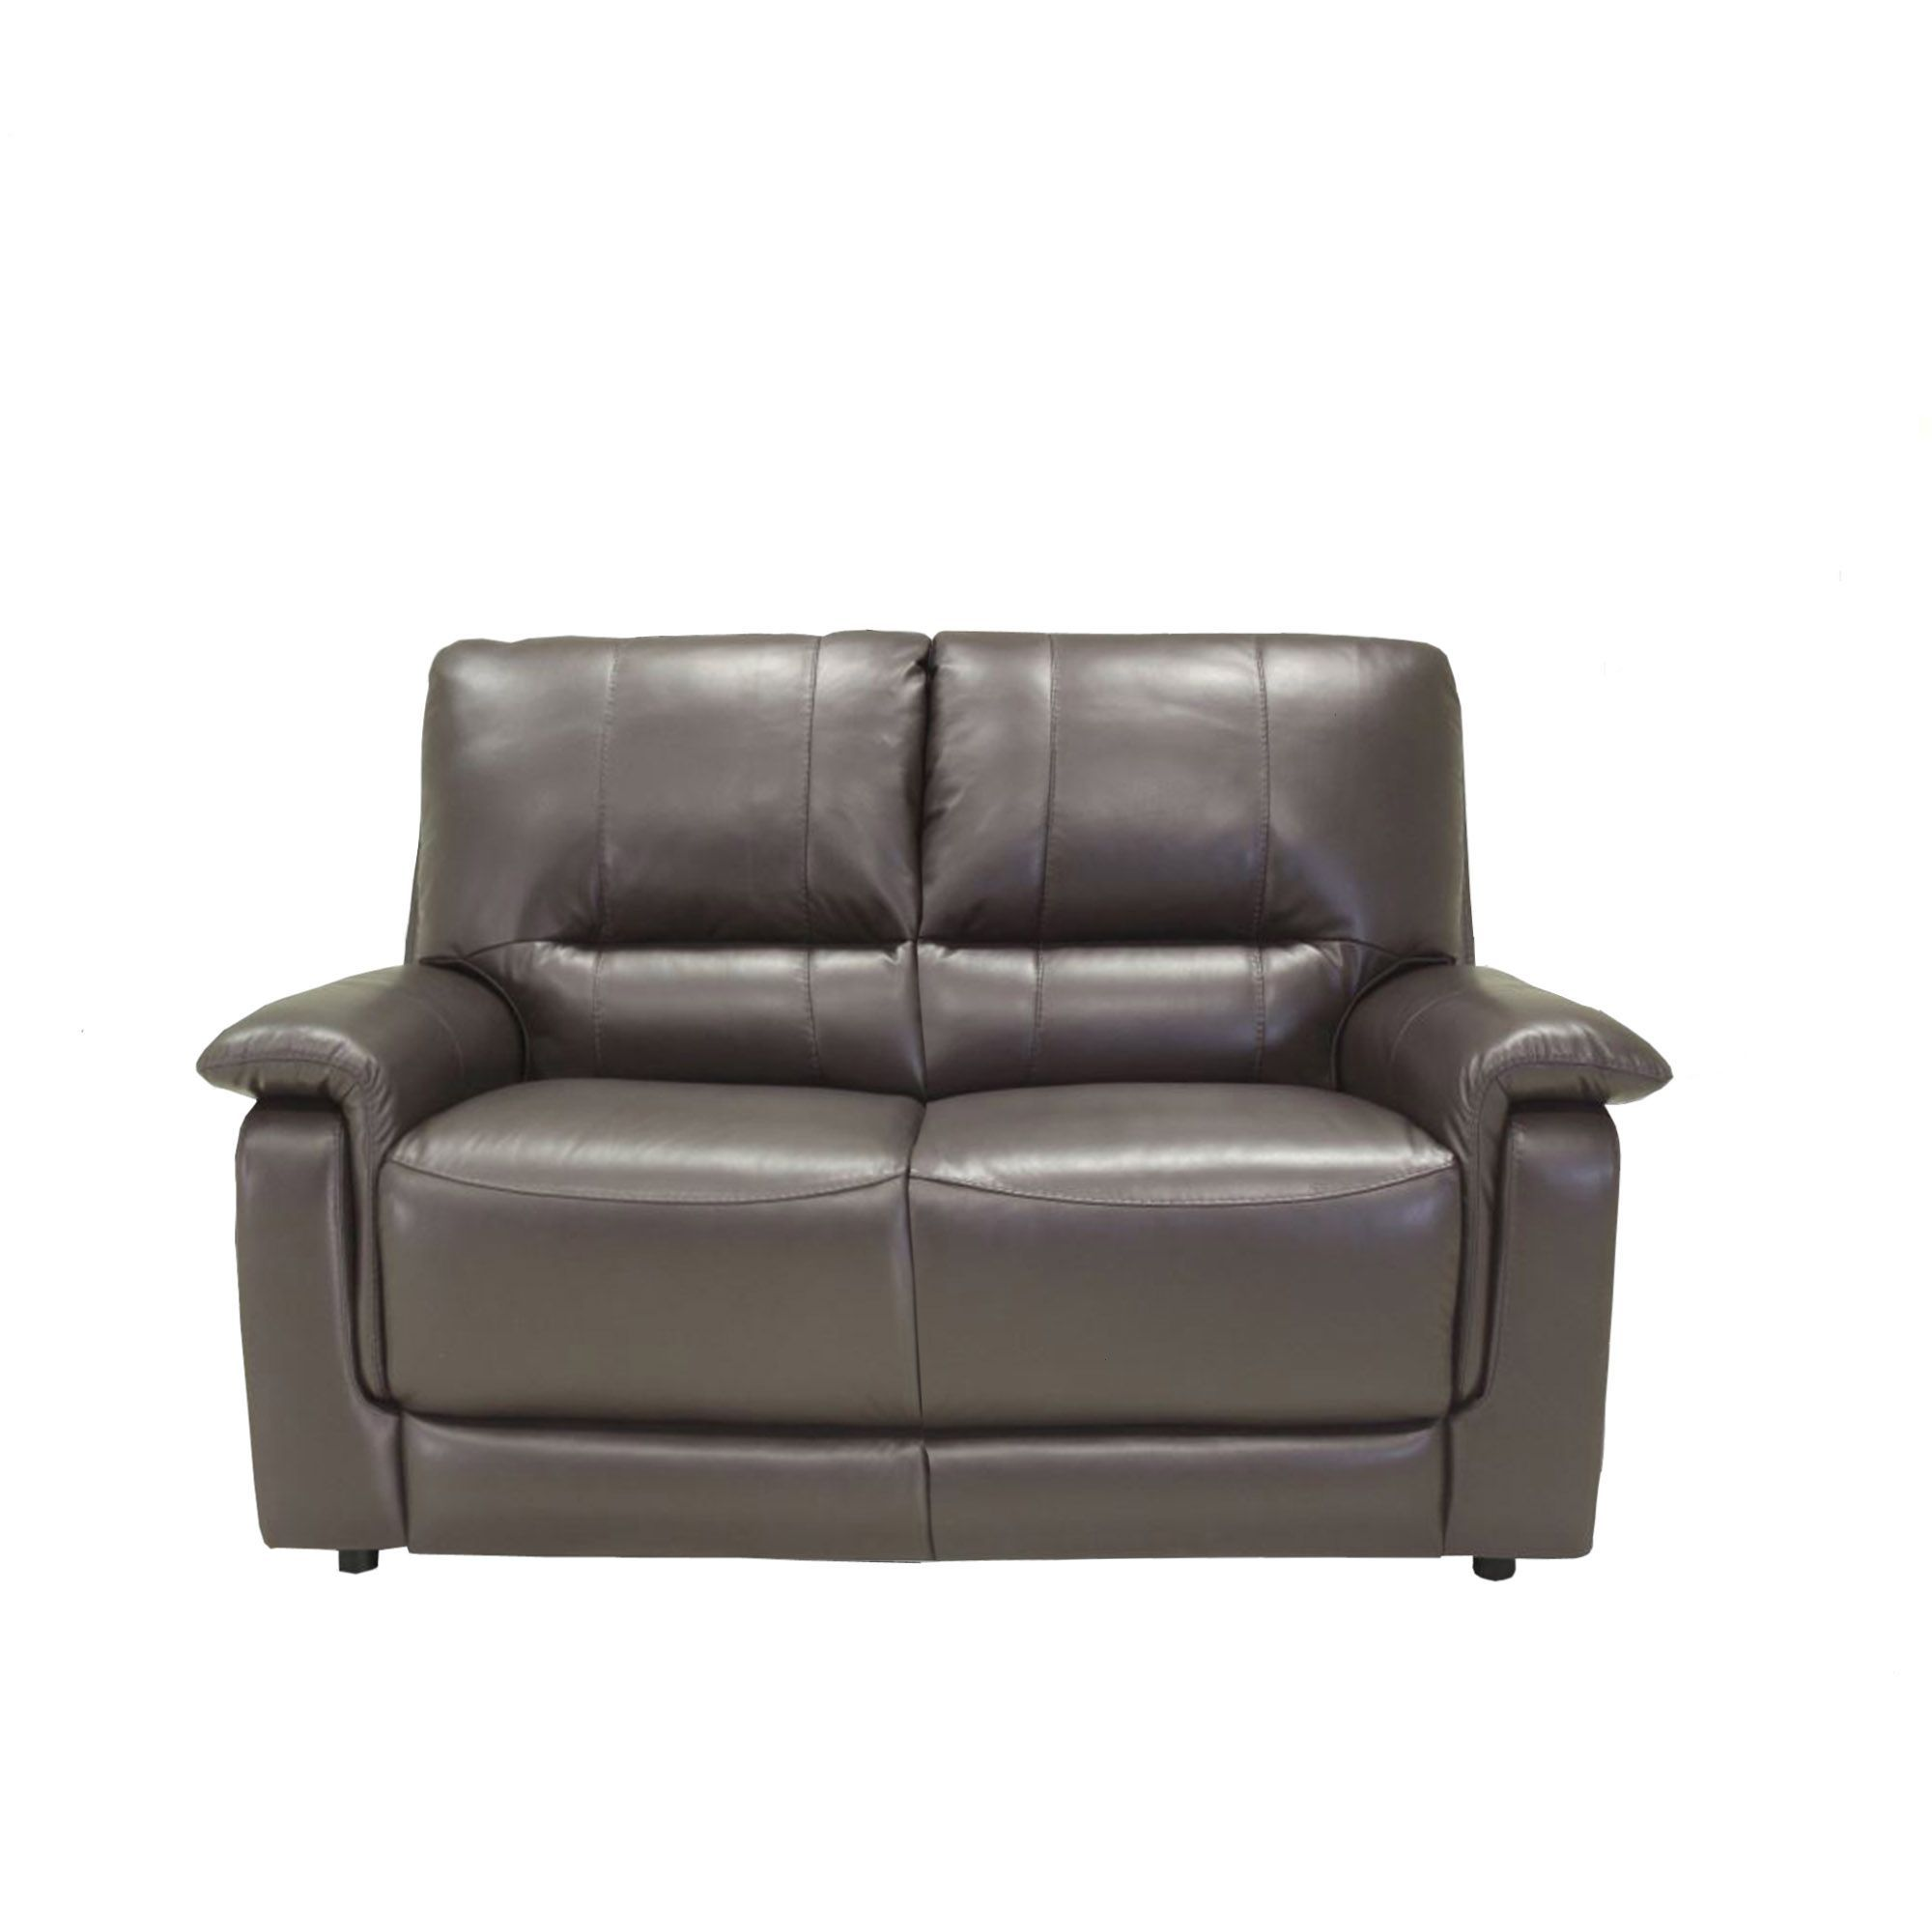 leather sofas online melbourne corner sofa bed purple cookes collection 2 seater living